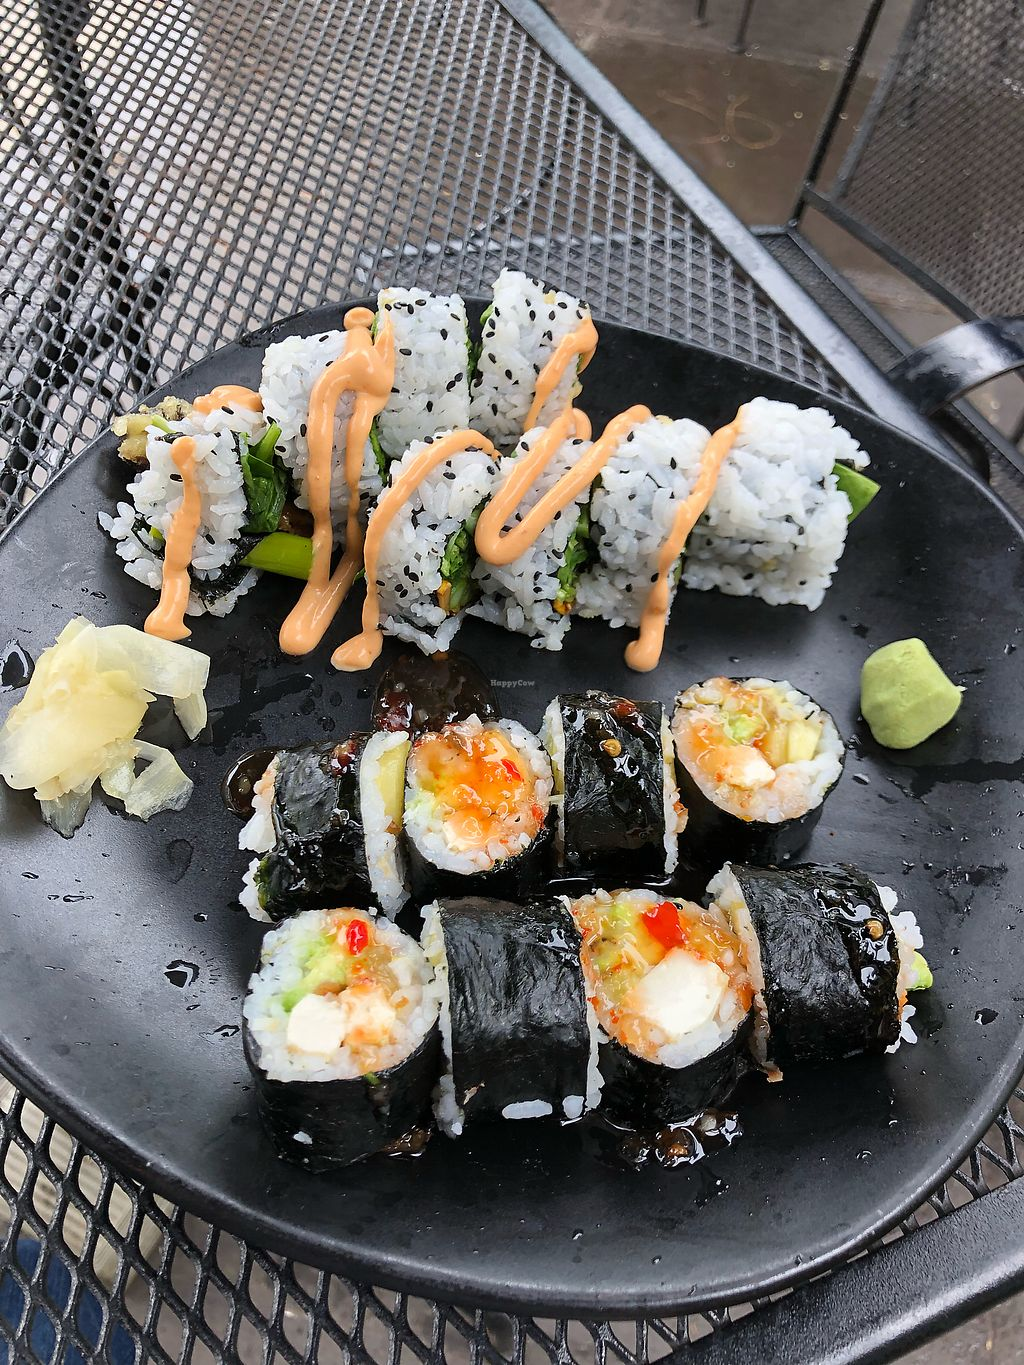 "Photo of Ok Bicycle Shop  by <a href=""/members/profile/carnold"">carnold</a> <br/>Sweetheart roll & Umami roll. YUMMY! <br/> March 18, 2018  - <a href='/contact/abuse/image/106653/372548'>Report</a>"